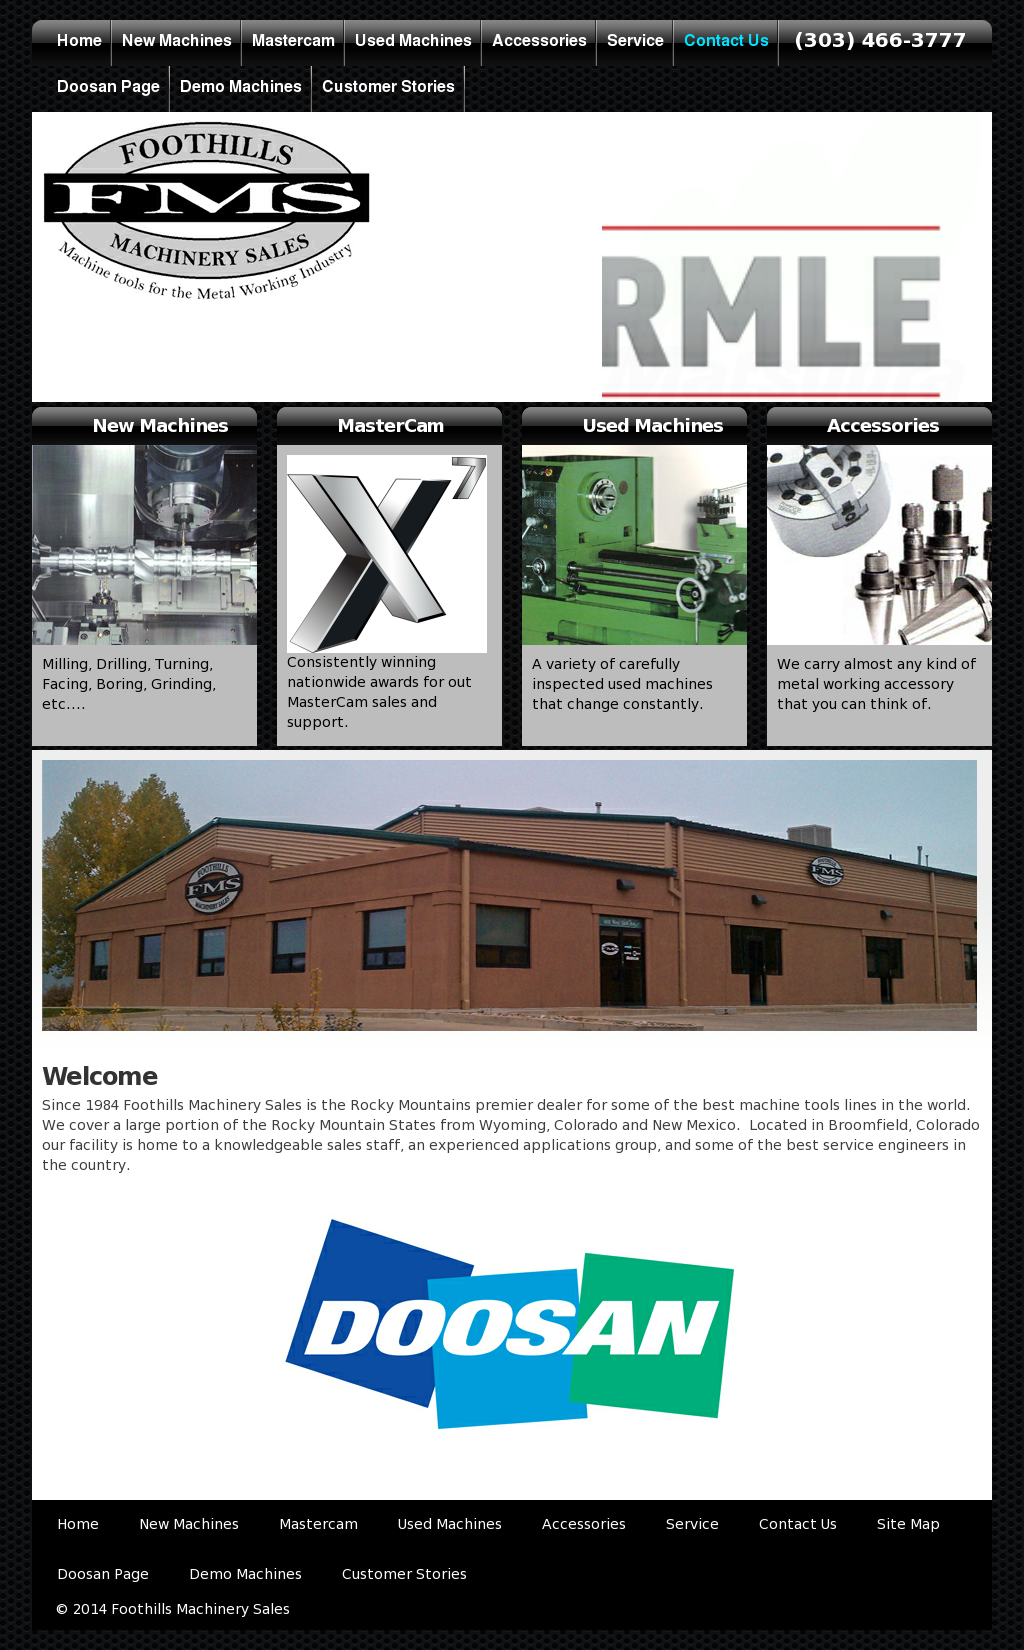 Foothills Machinery Sales Competitors, Revenue and Employees - Owler